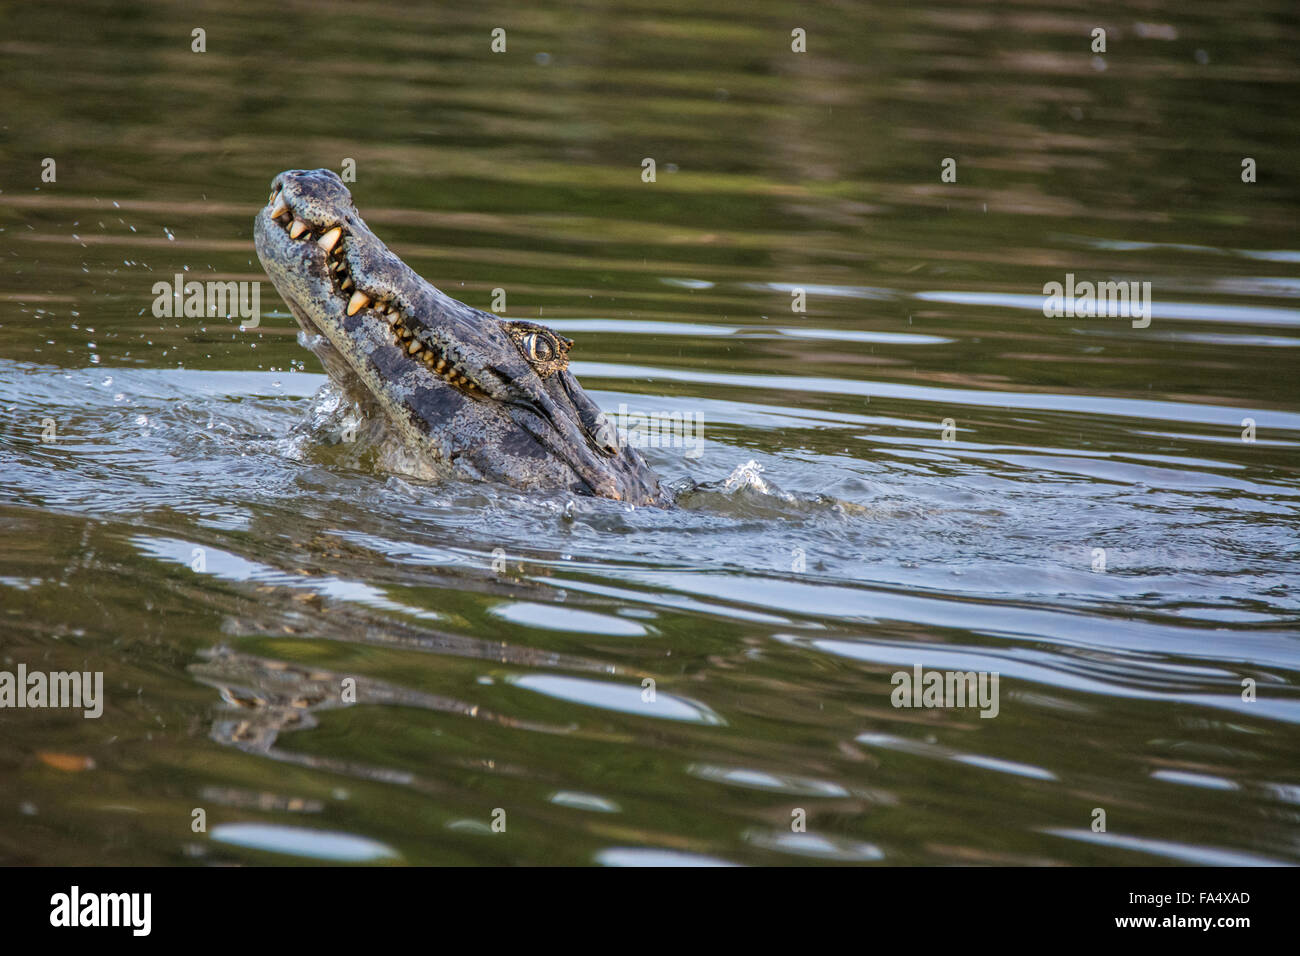 Yacare Caiman, Caiman crocodilus yacare, baring his teeth in a river in the Pantanal, Mato Grosso, Brazil, South America Stock Photo